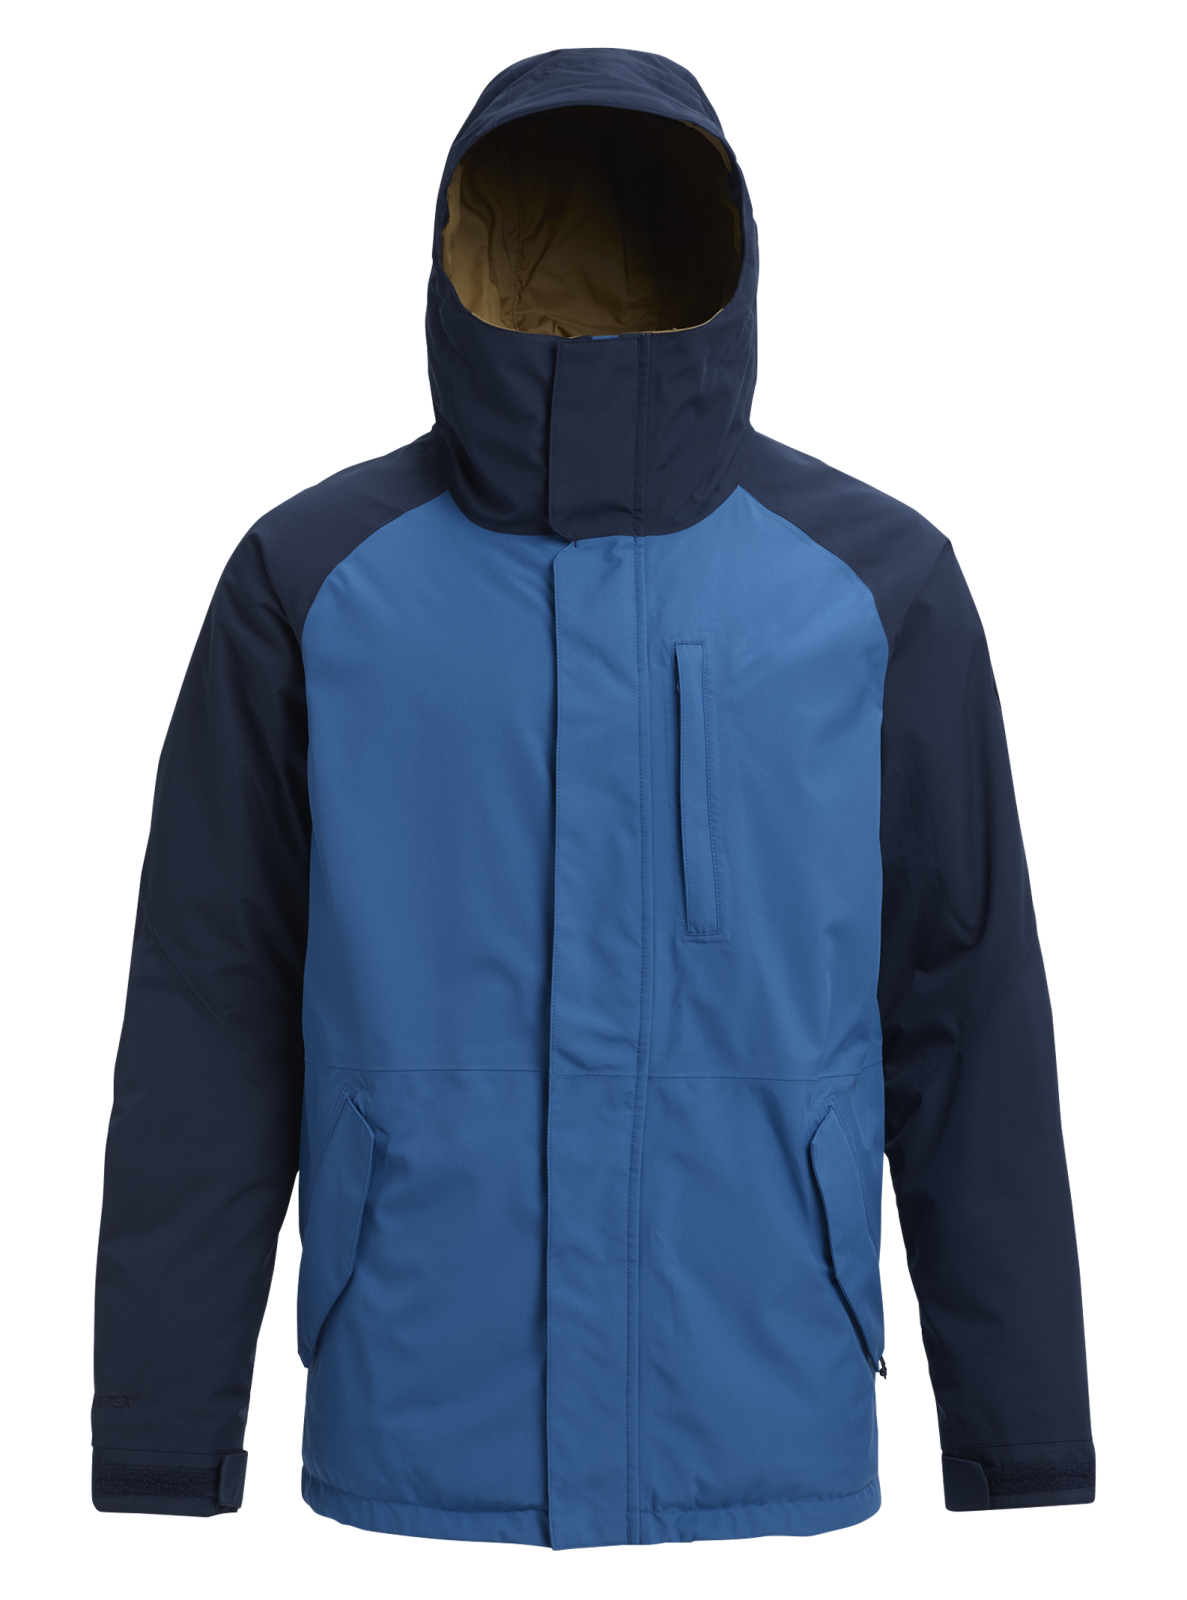 Burton Gore Radial Shell Jacket Vallarta Blue 2019